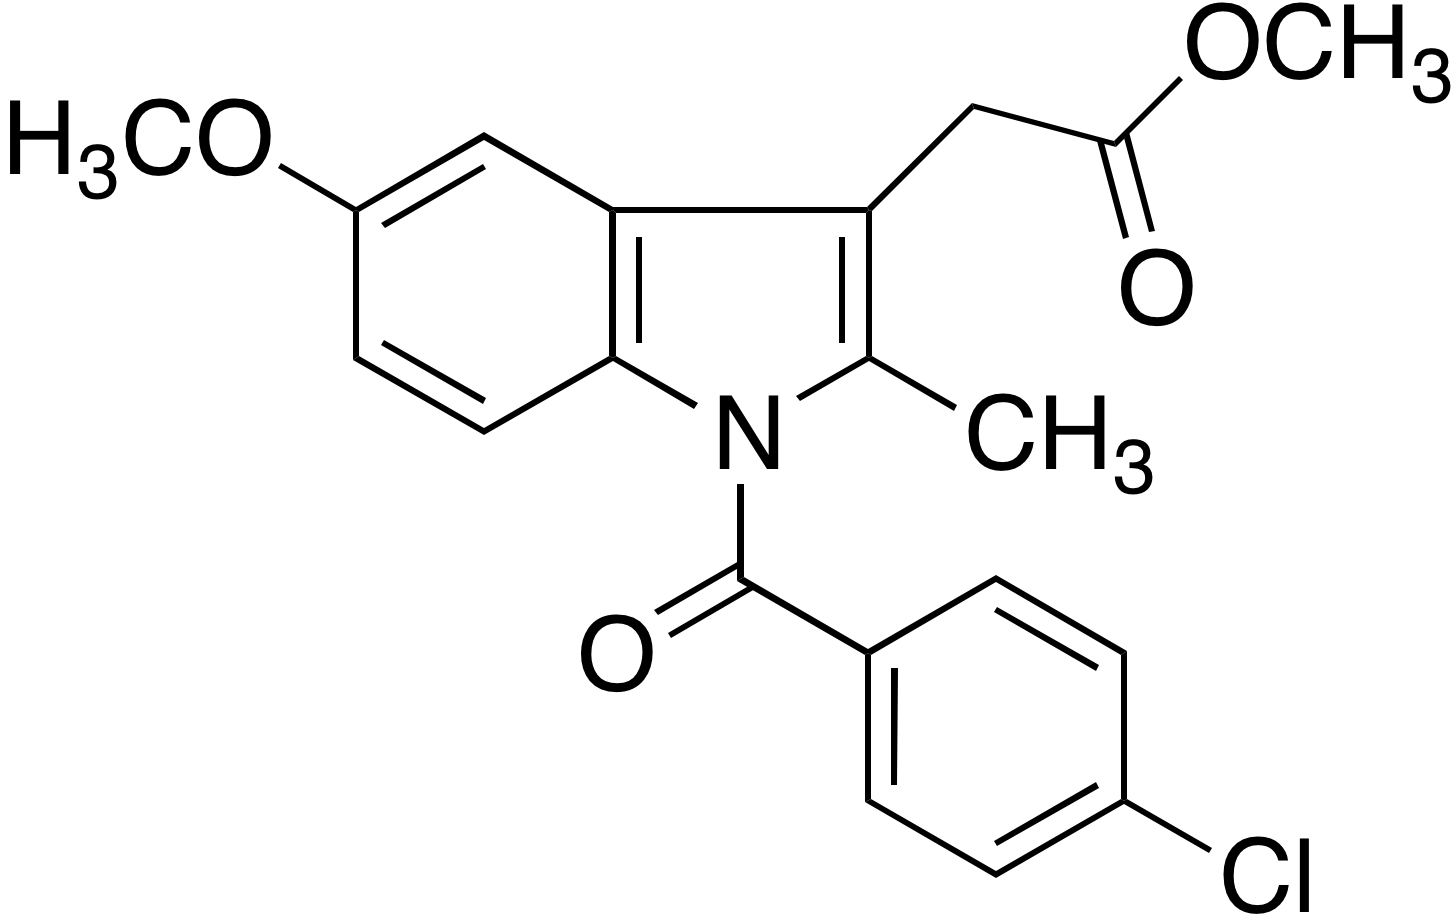 Indomethacin methyl ester